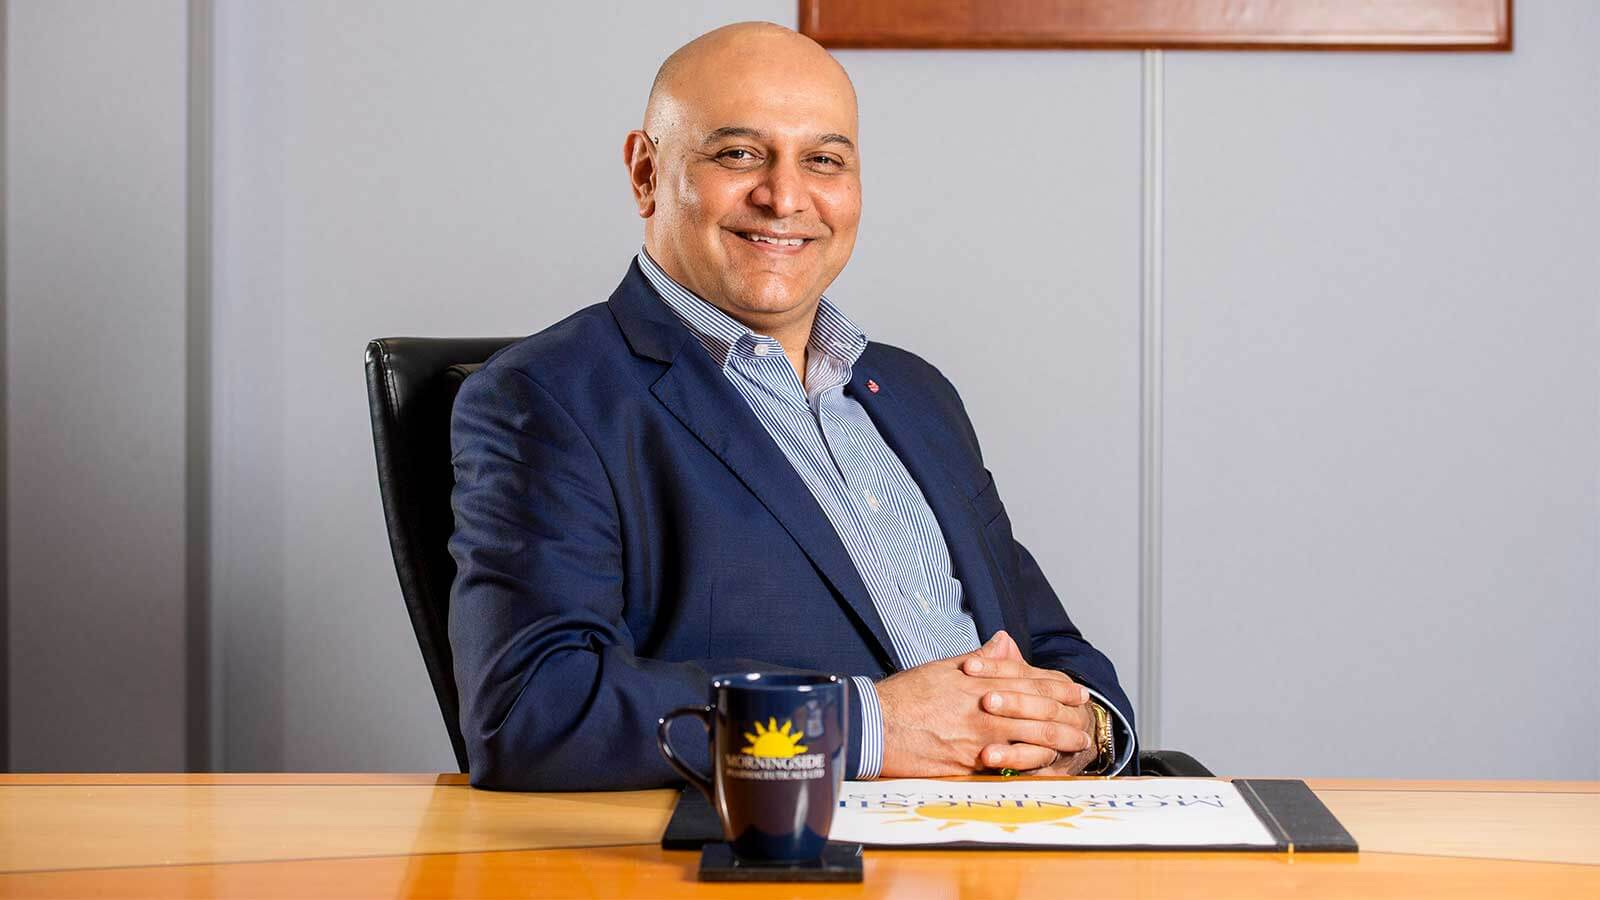 Dr Nik Kotecha OBE, Chairman of Morningside Pharmaceuticals